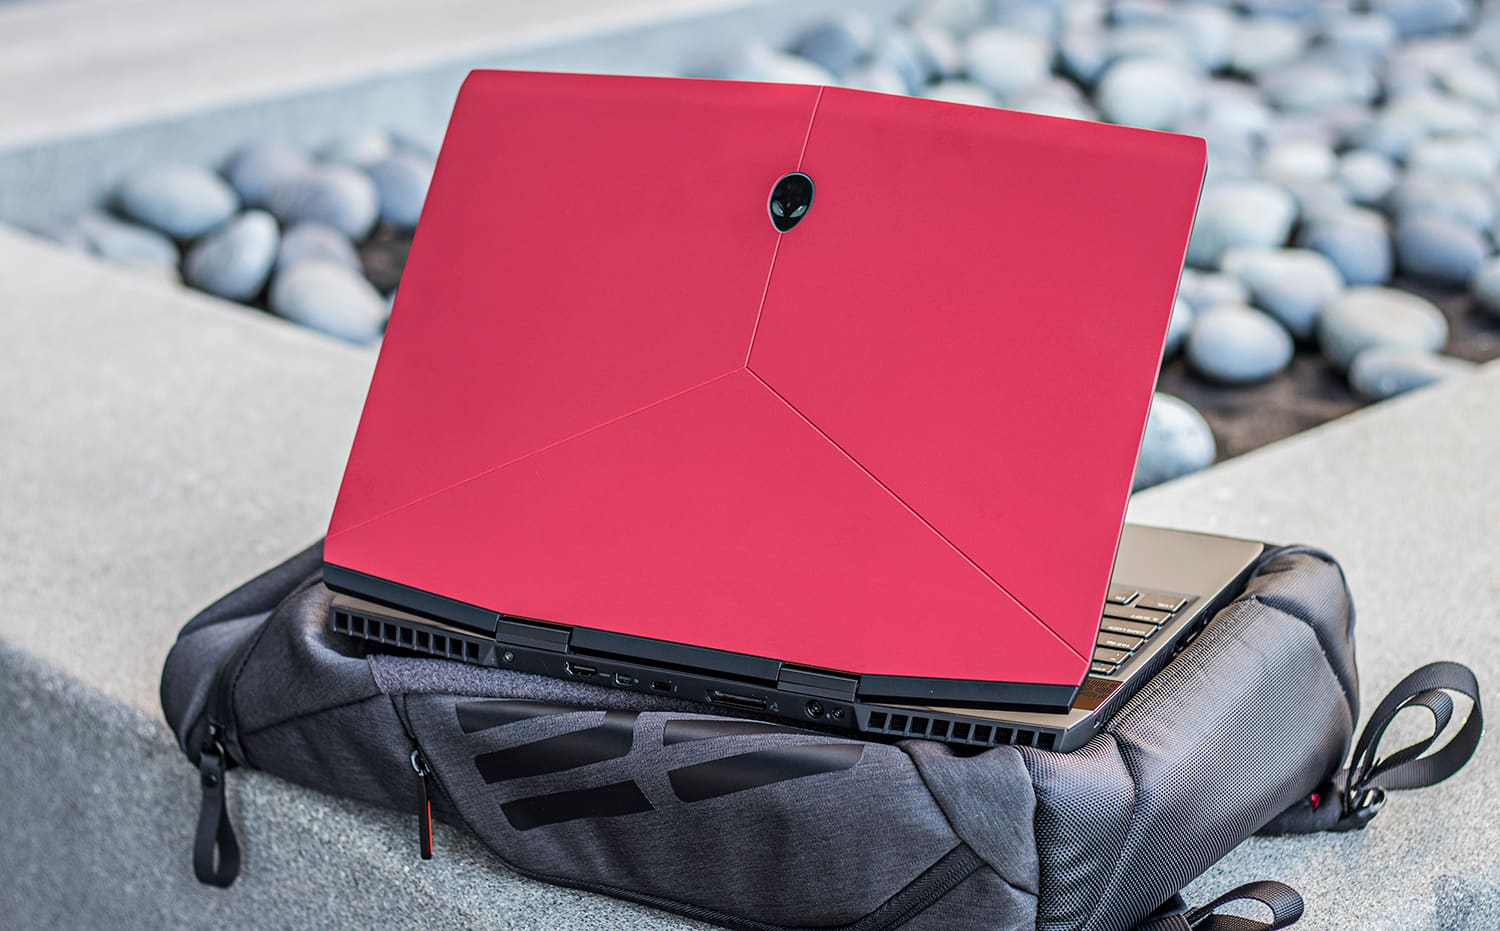 Alienware's m15 Gaming Laptop Now Offers an OLED Display for Incredible  Visuals